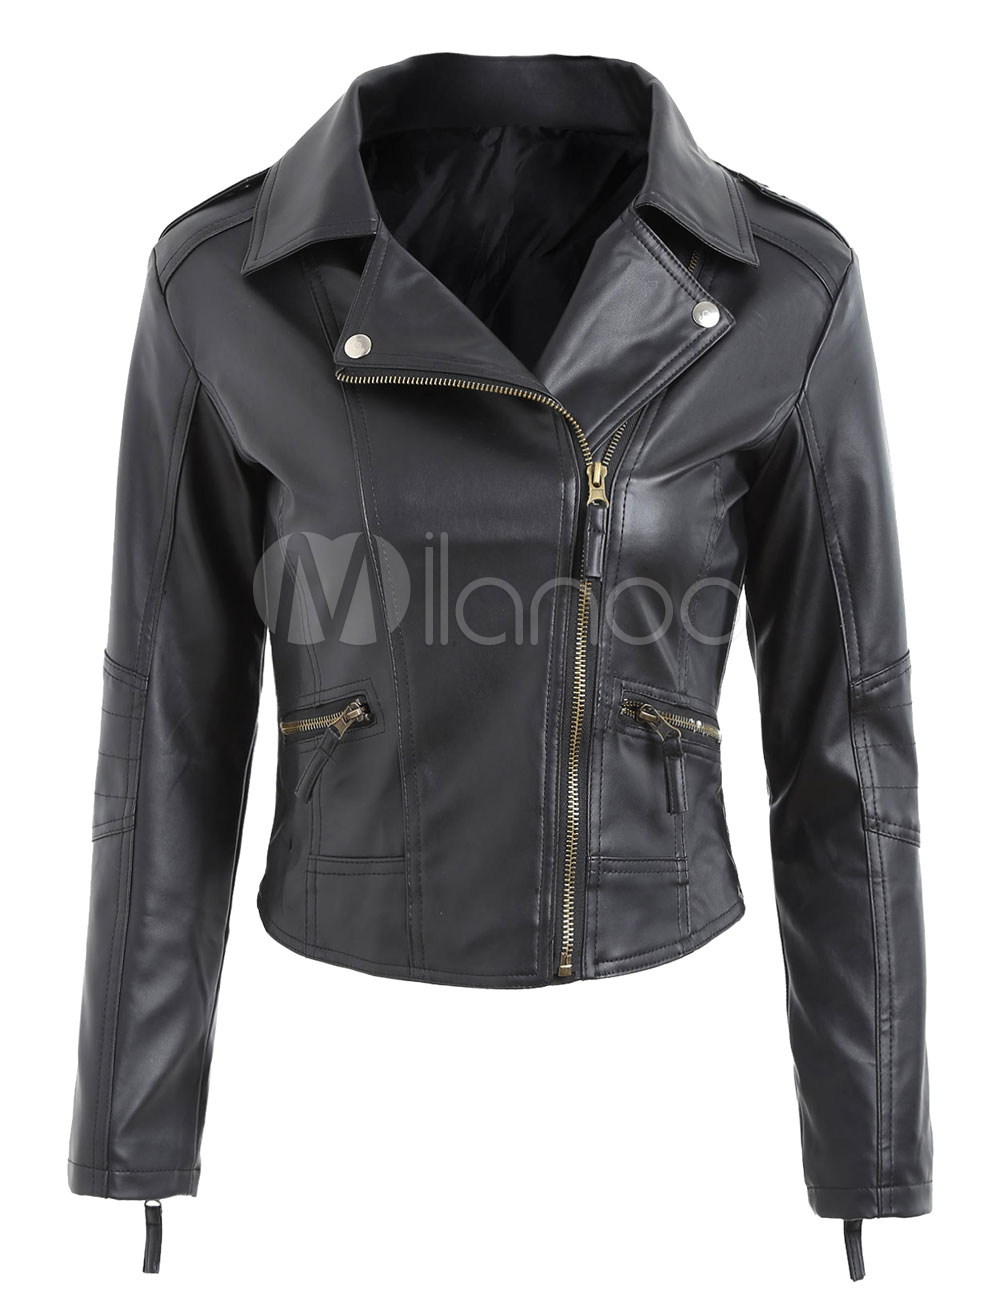 Buy Black Moto Jacket Long Sleeve Turndown Collar PU Leather Jackets For Women for $28.49 in Milanoo store